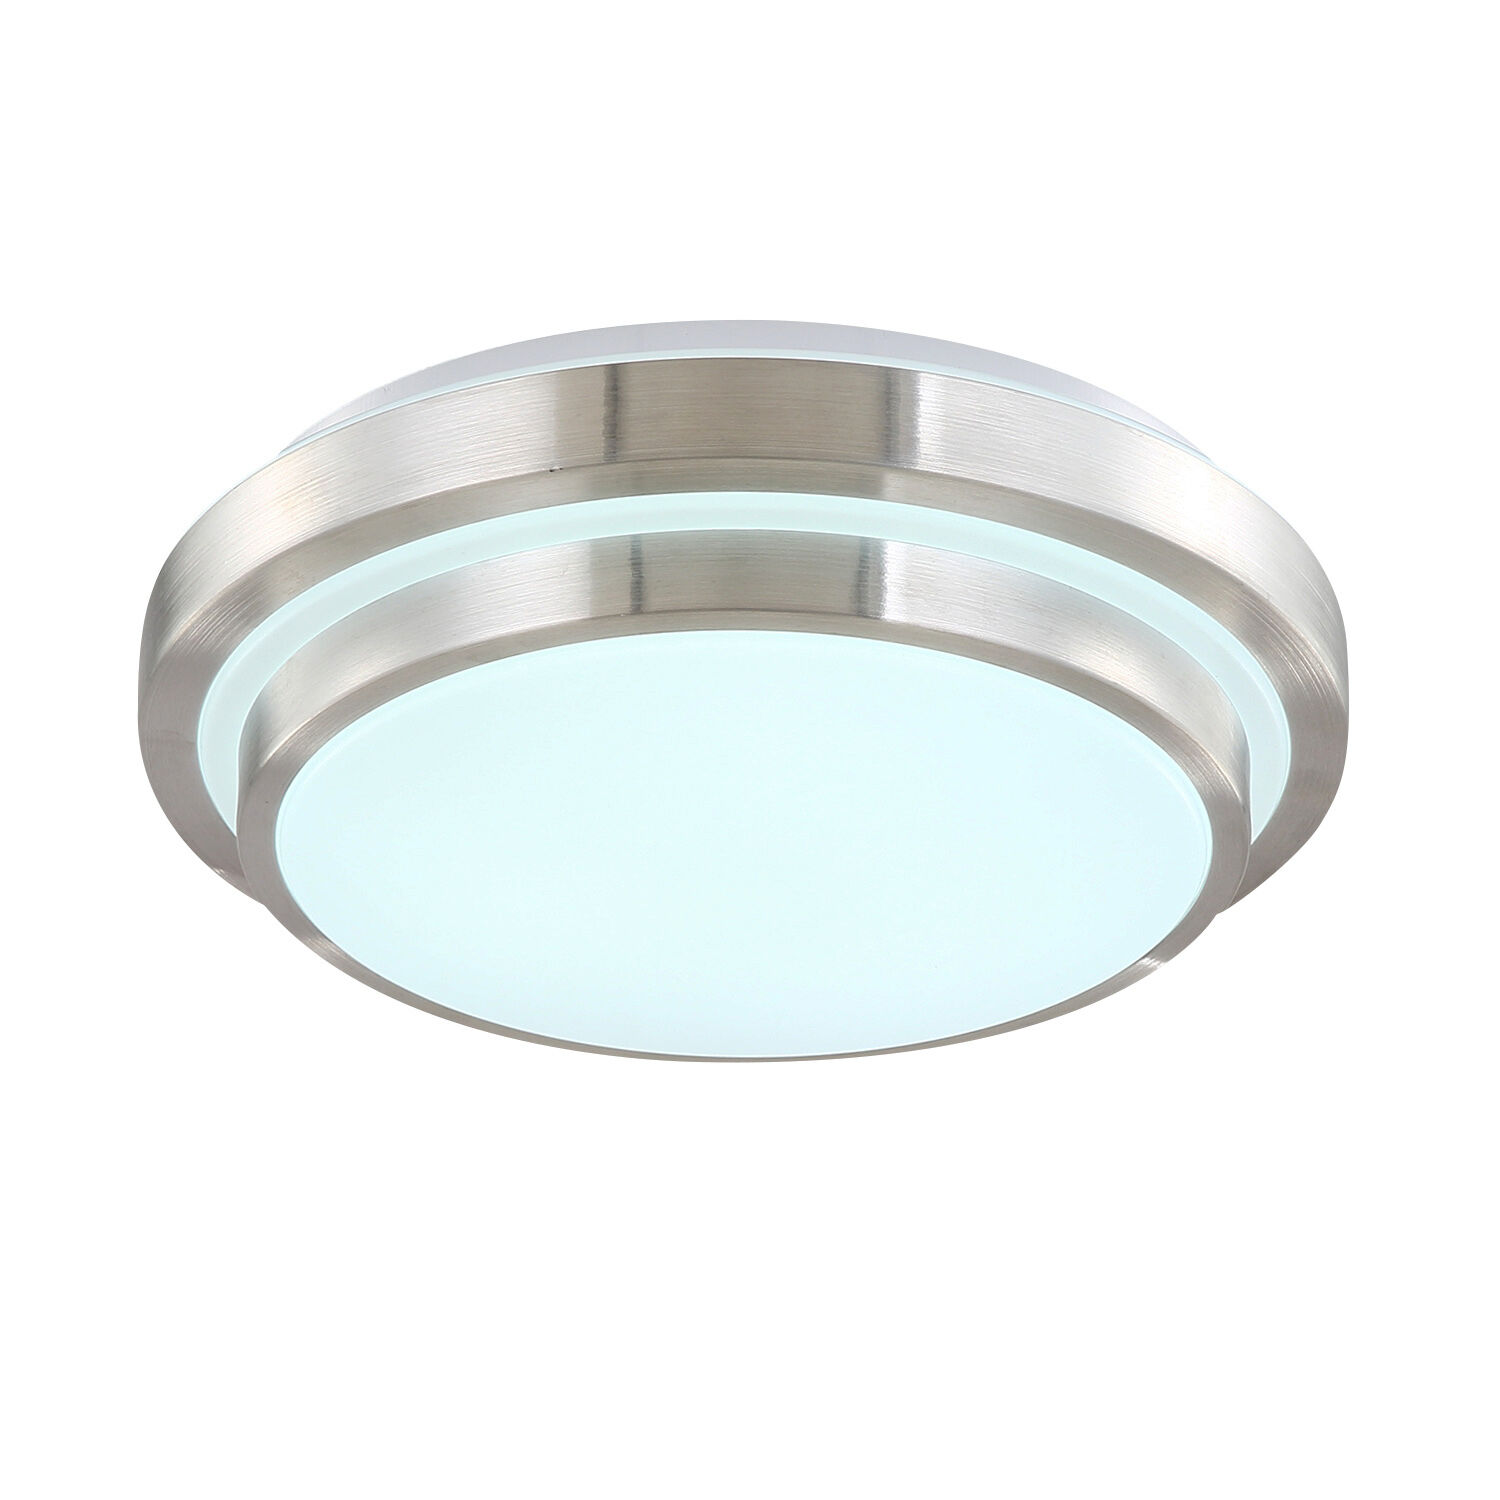 New Modern Pendant Acrylic Lamp Ceiling Light Fixture